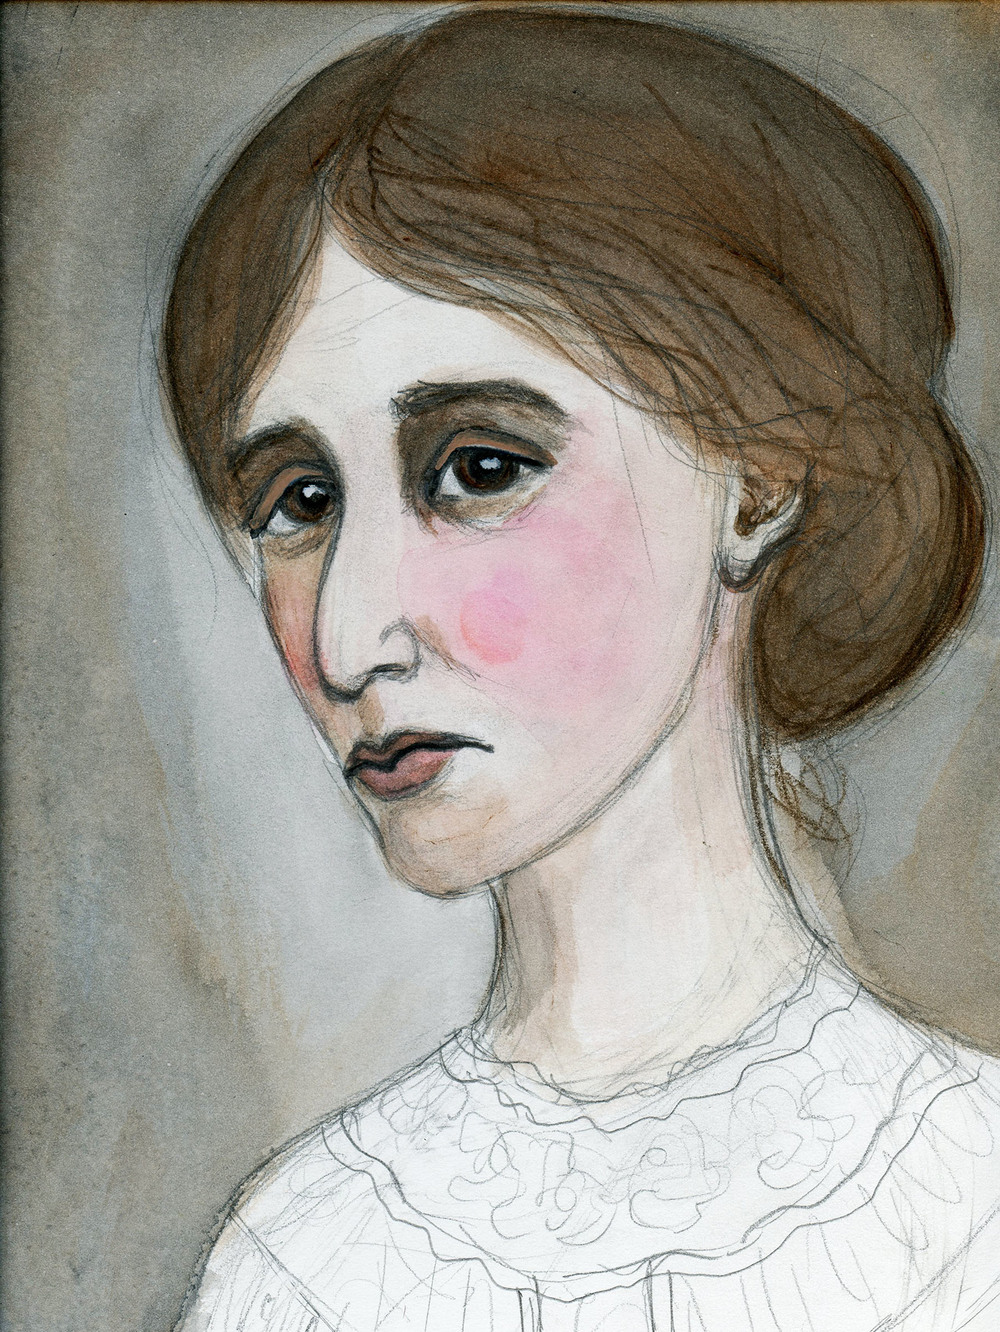 The Sad Eyes of Virginia Woolf